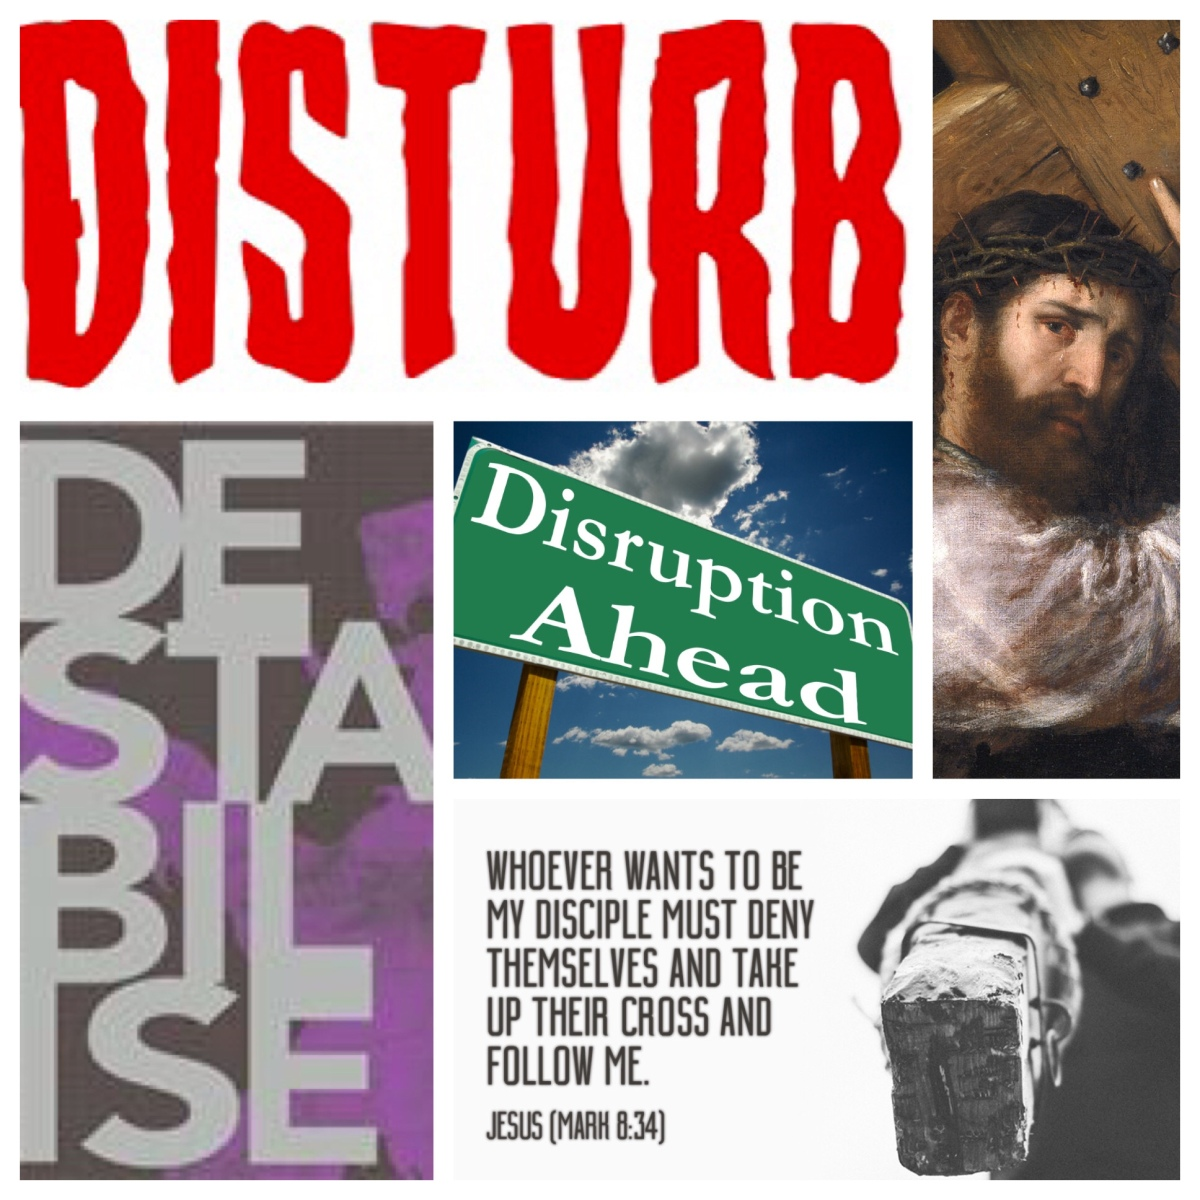 Disturbance, disruption, and destabilising words (Mark 8; Lent 2)